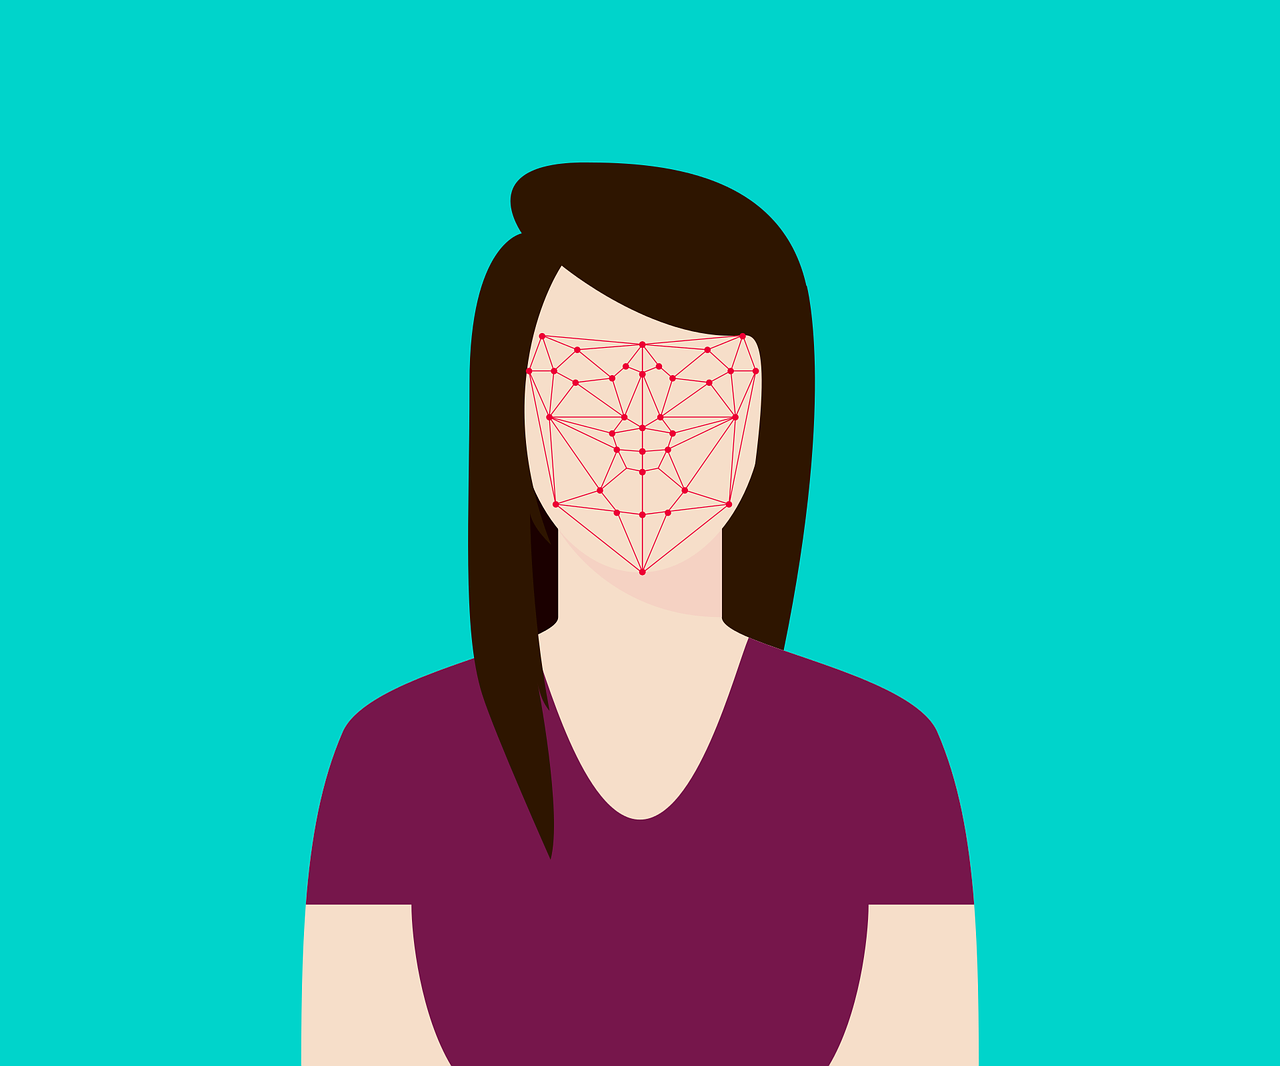 ACLU files suit against FBI and DOJ over use of facial recognition software